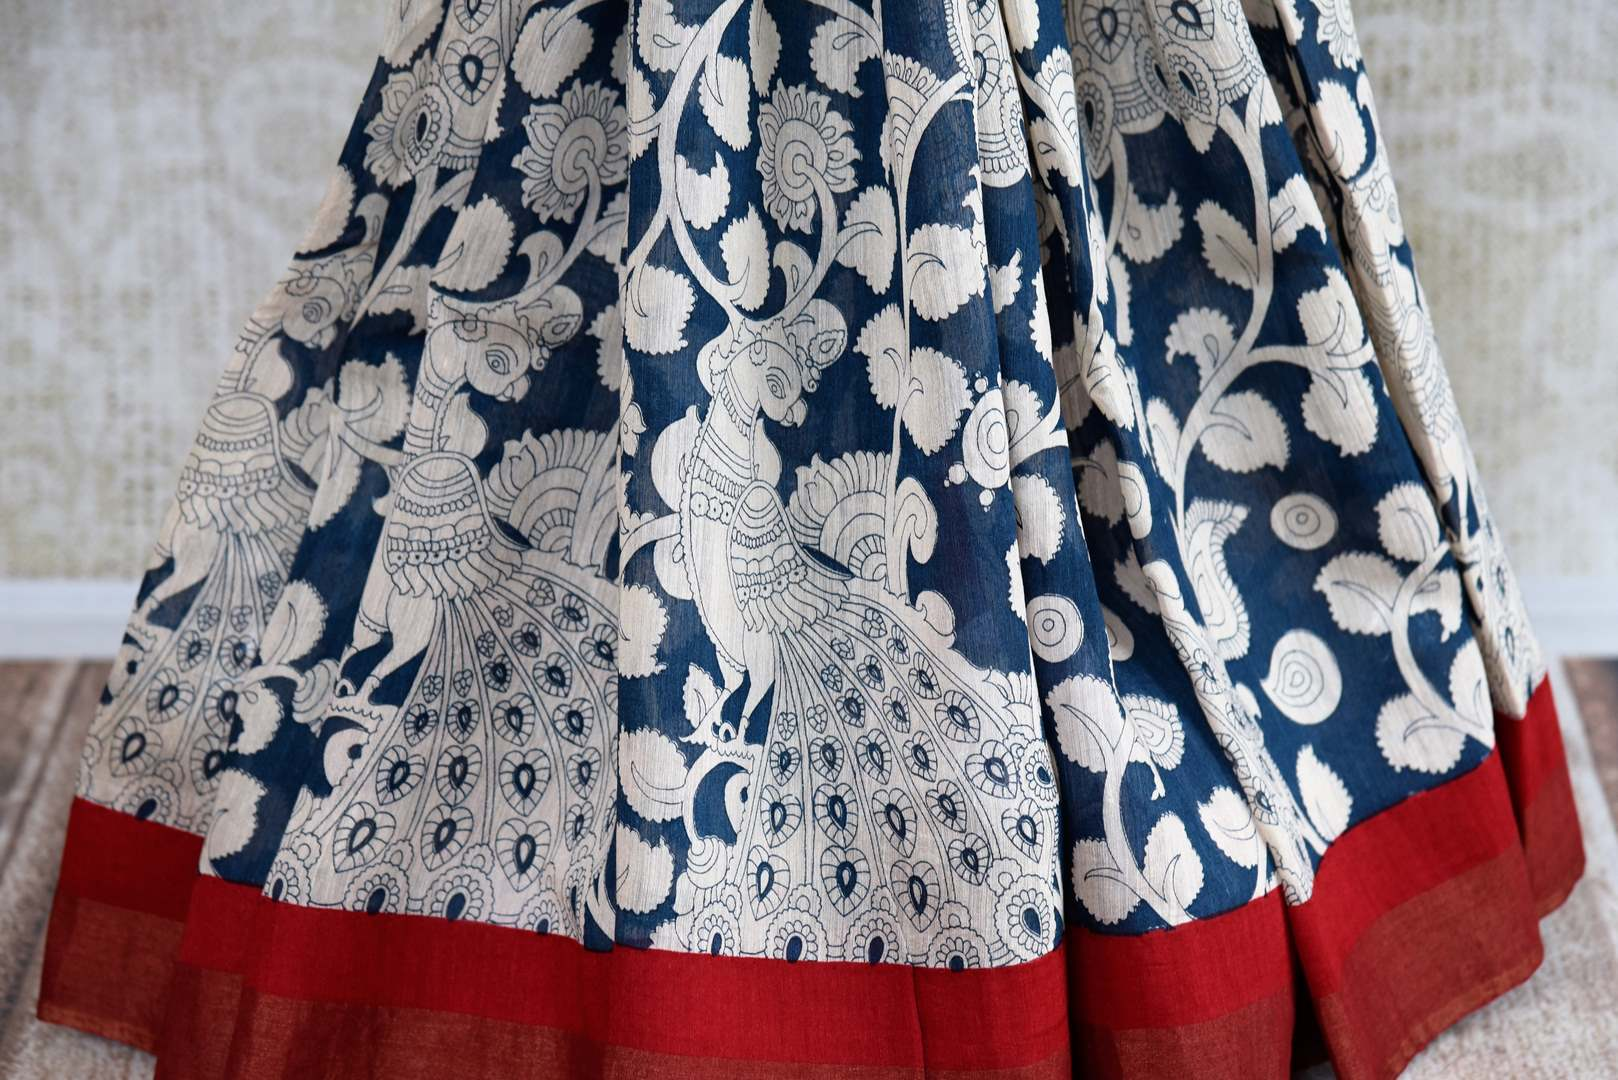 Buy dark blue printed tussar silk saree online in USA. Pure Elegance clothing store brings an exquisite collection of Indian designer saris in USA for women. Shop online.-pleats